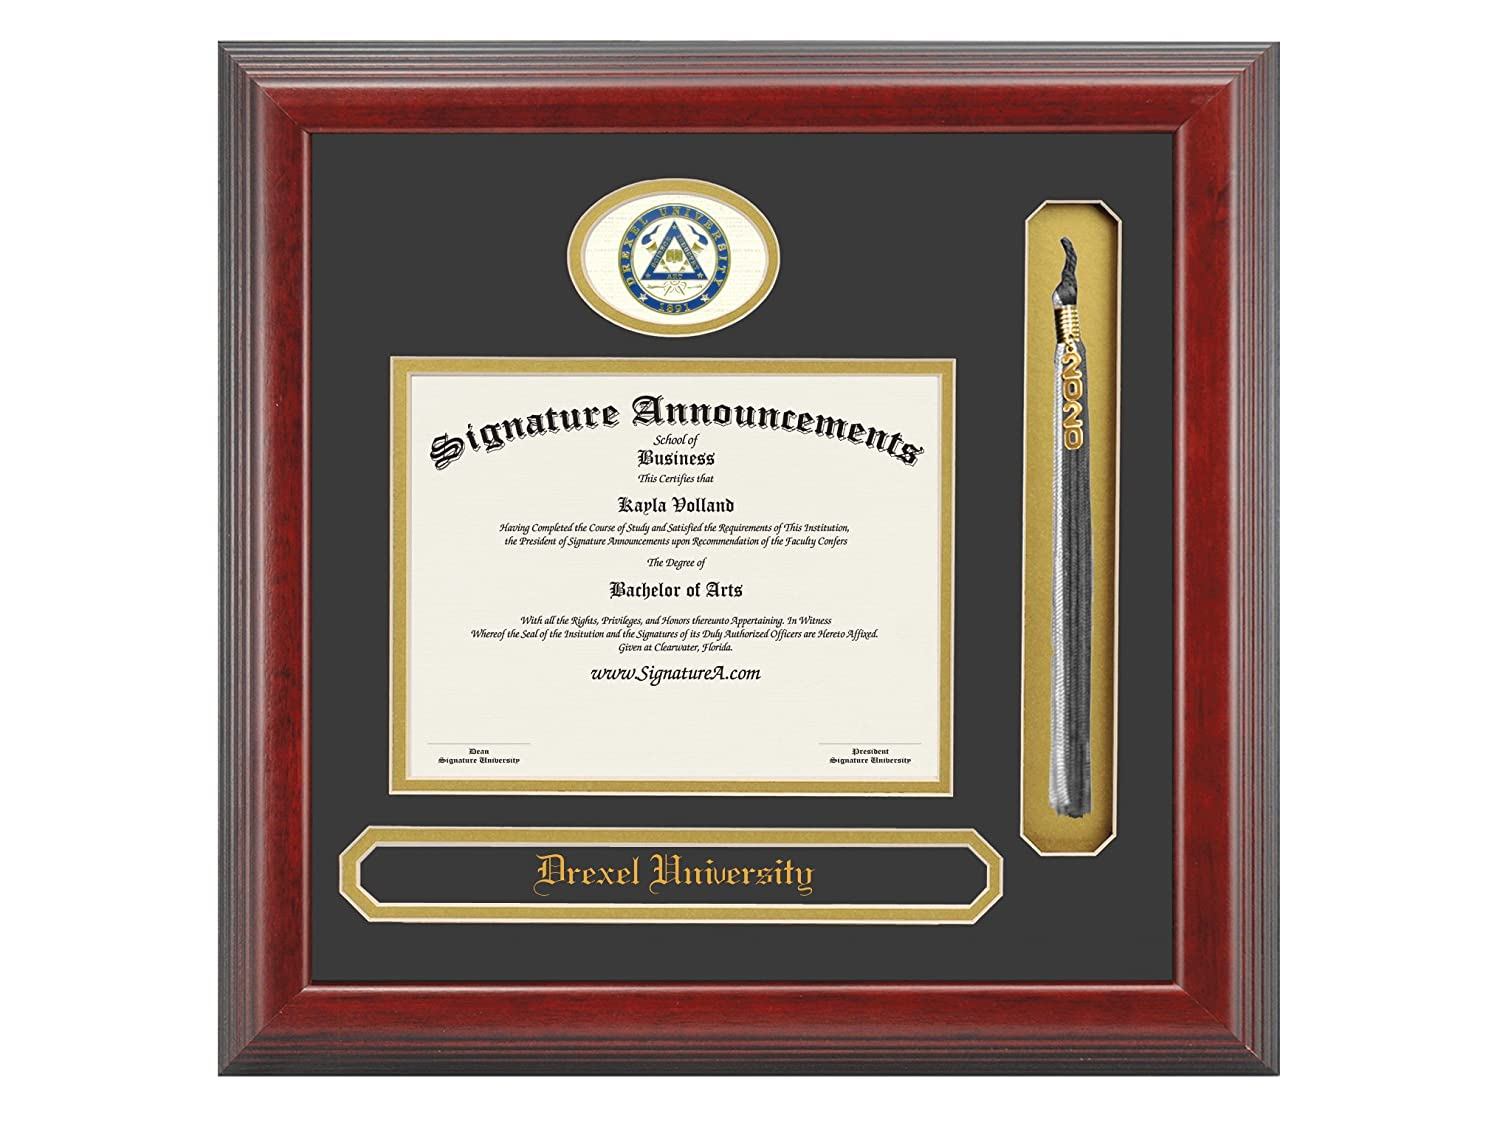 Sculpted Foil Seal Cherry Name /& Tassel Graduation Diploma Frame 20 x 20 Signature Announcements Drexel-University Undergraduate